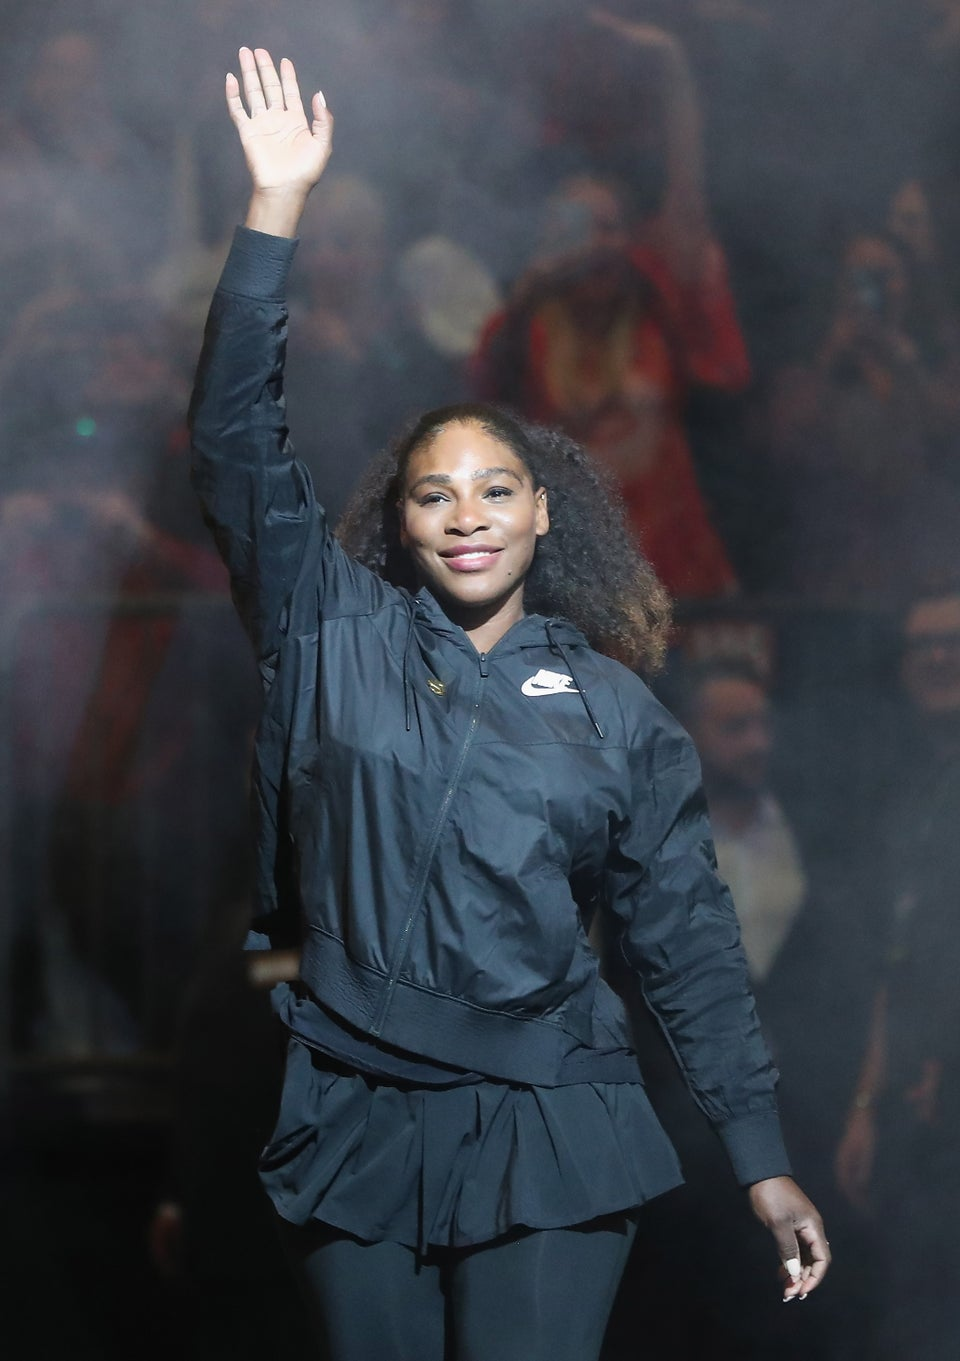 Serena Williams RevealsShe Had Fears Of Returning To Court Post-Baby In New HBO Trailer